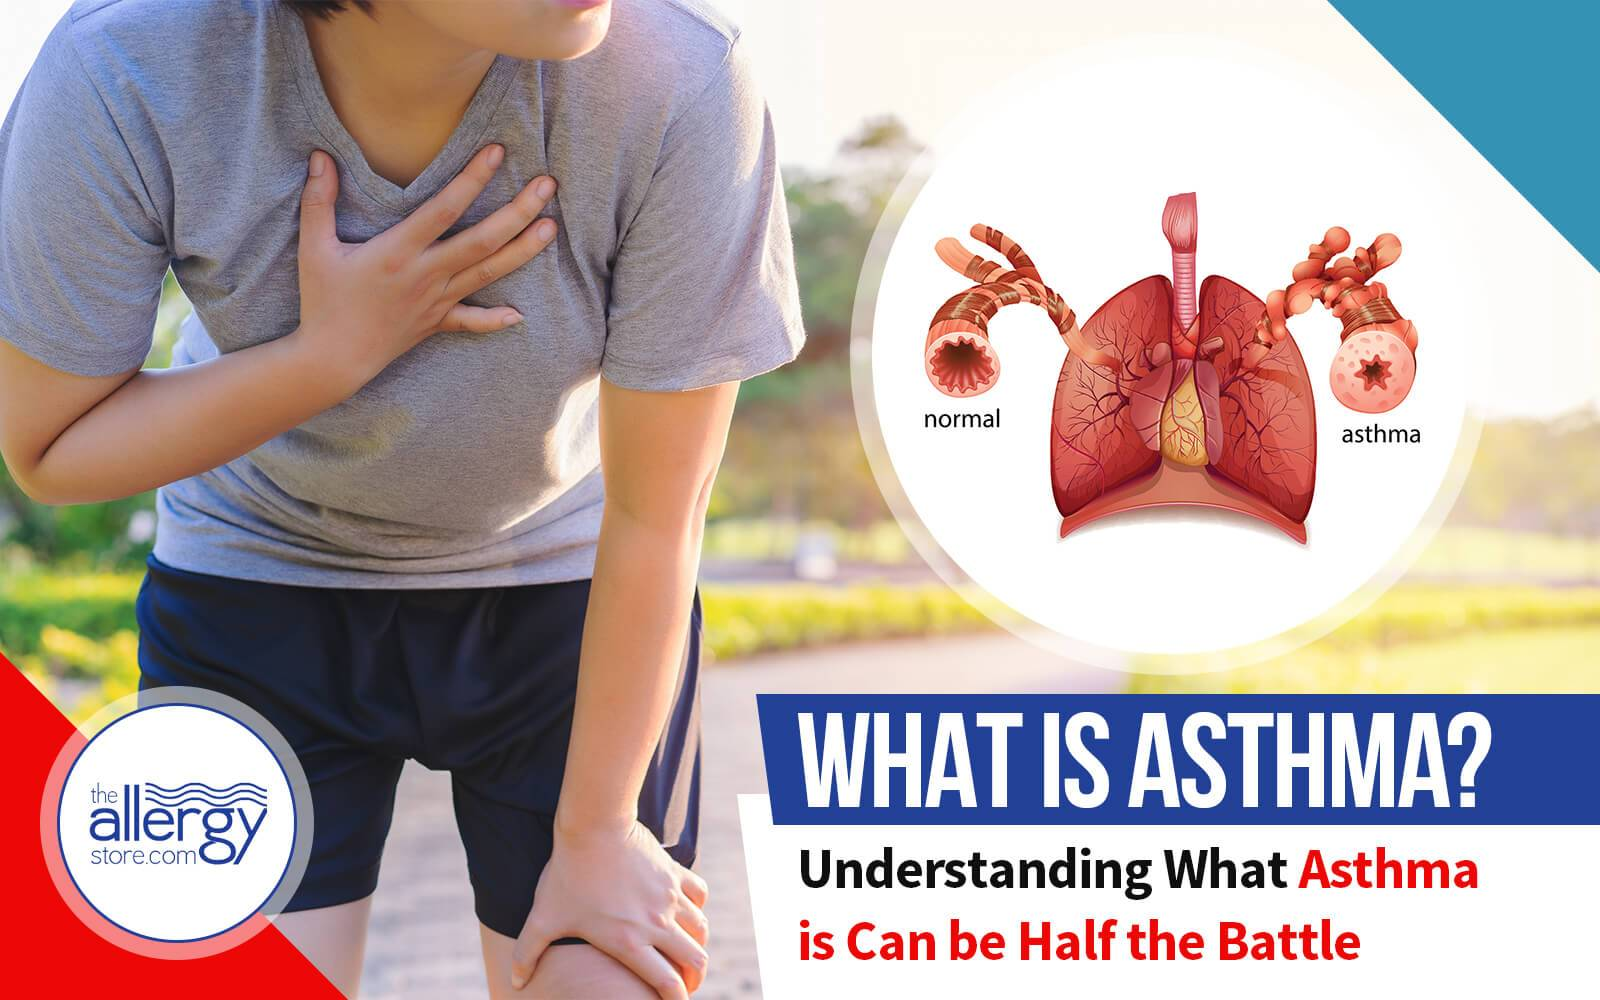 What Is Asthma? Understanding What Asthma is Can be Half the Battle